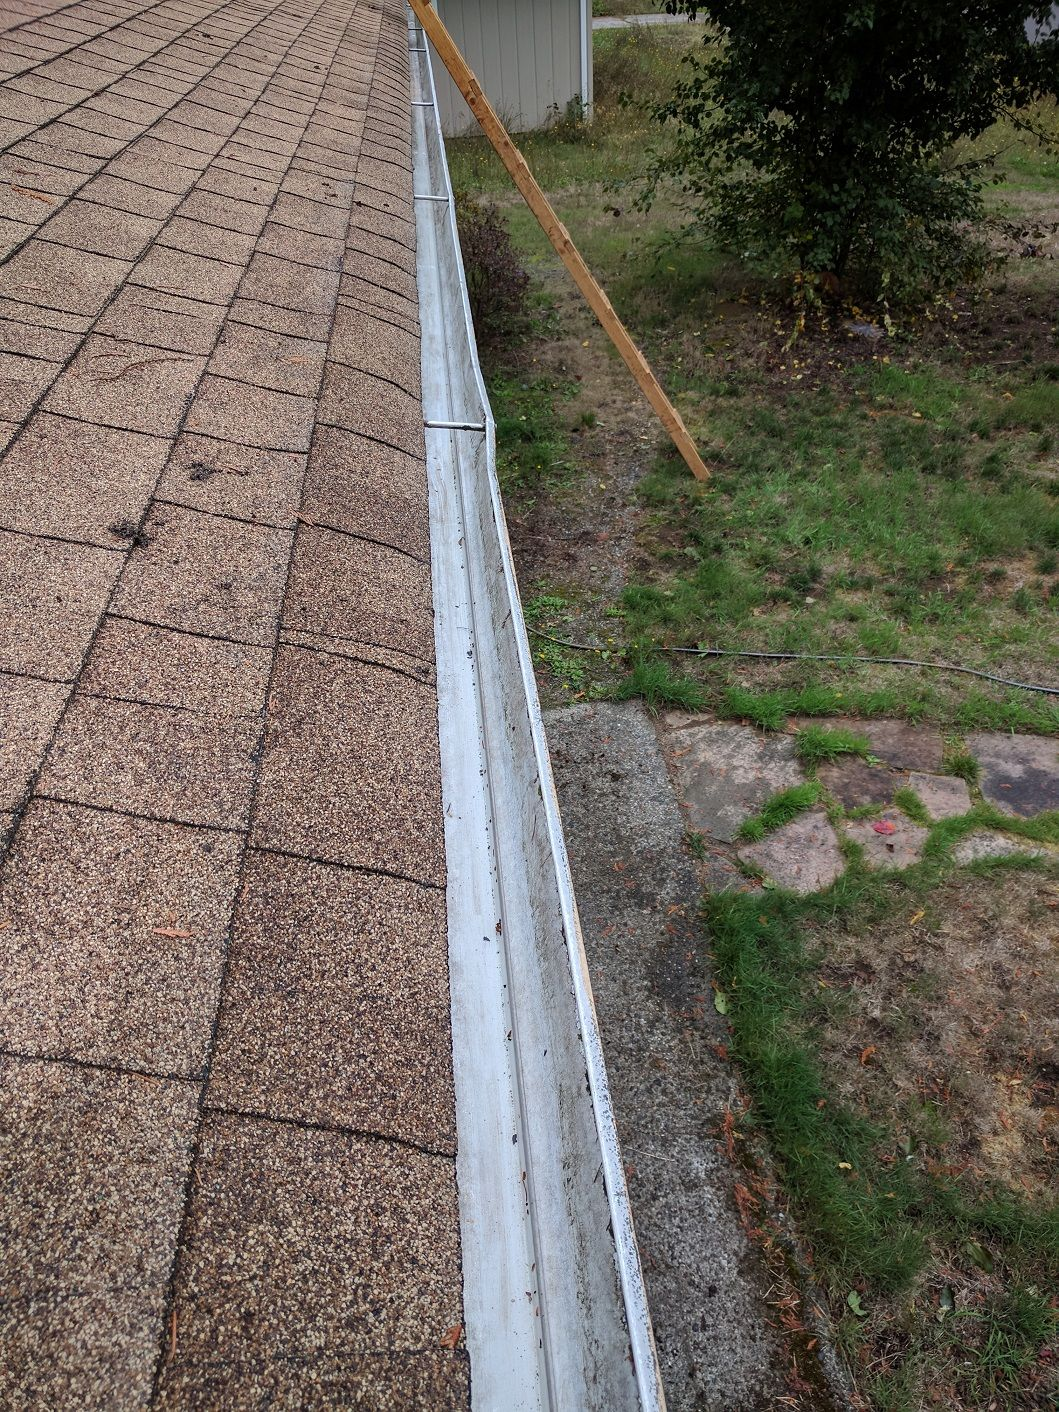 7 Diy Tips To Winterize Your Home For Cheap Gutter Guard Clogged Gutter Cleaning Gutters